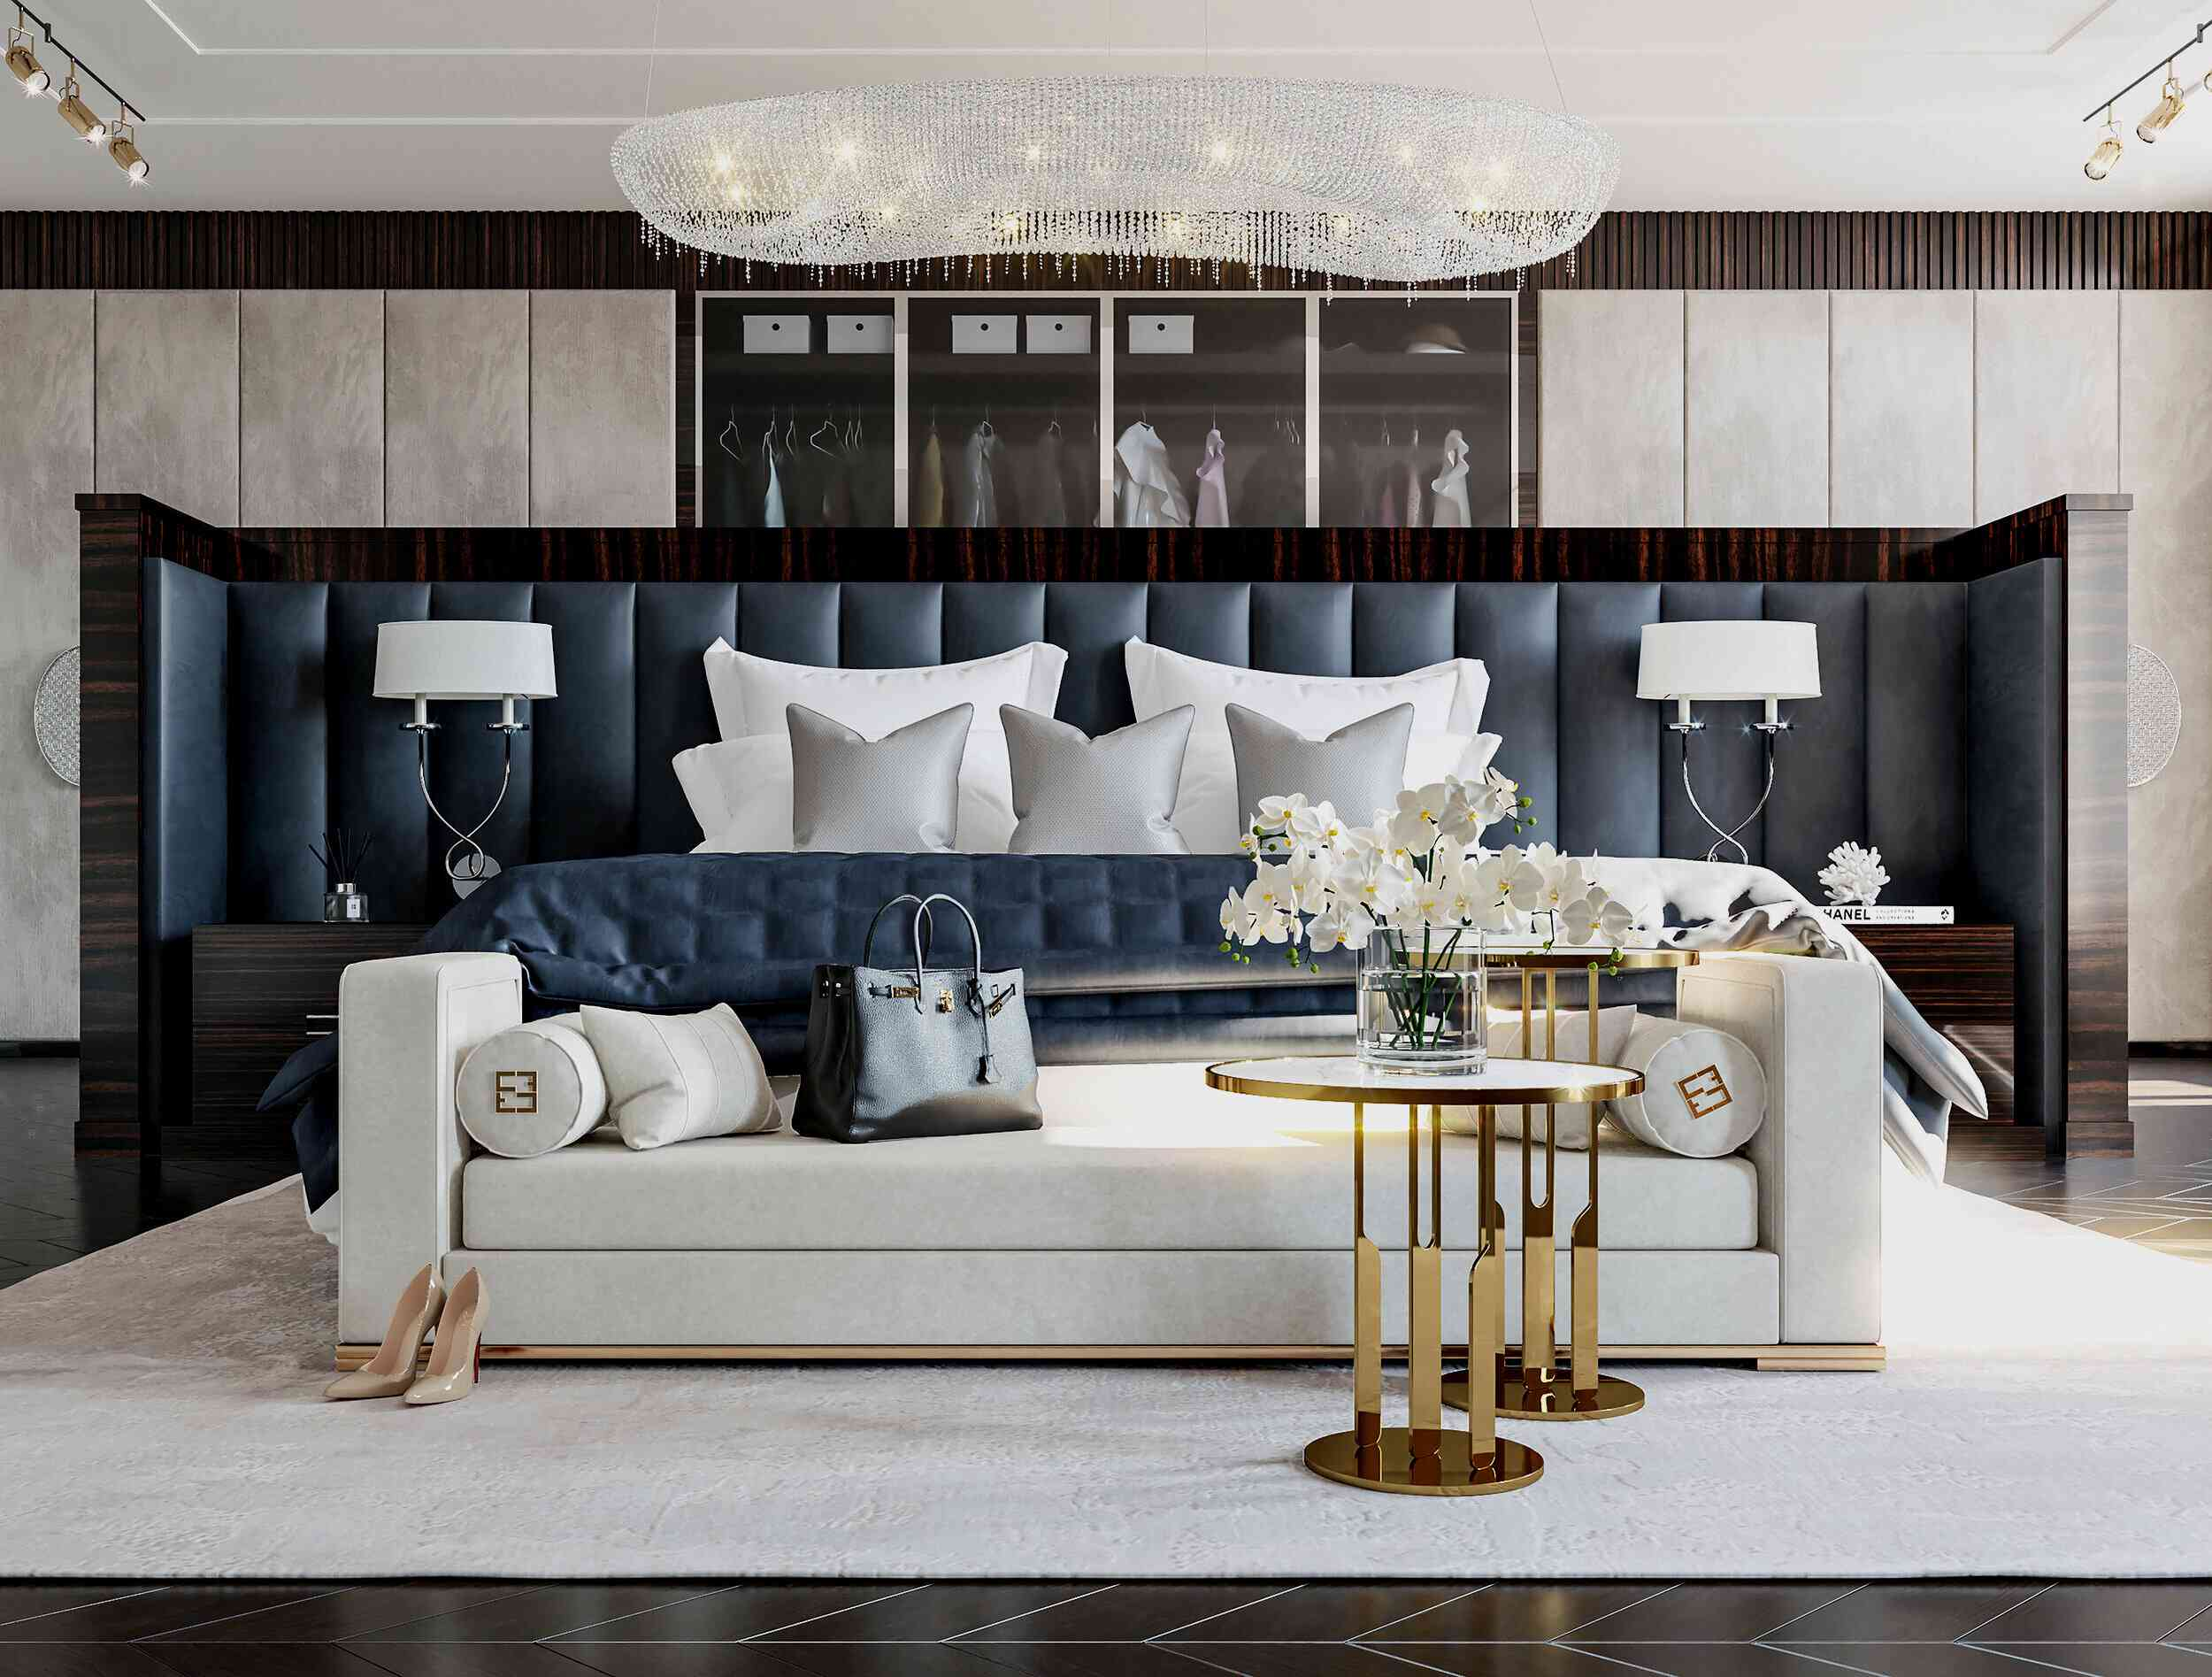 Maximalist bedroom with cream and navy accents